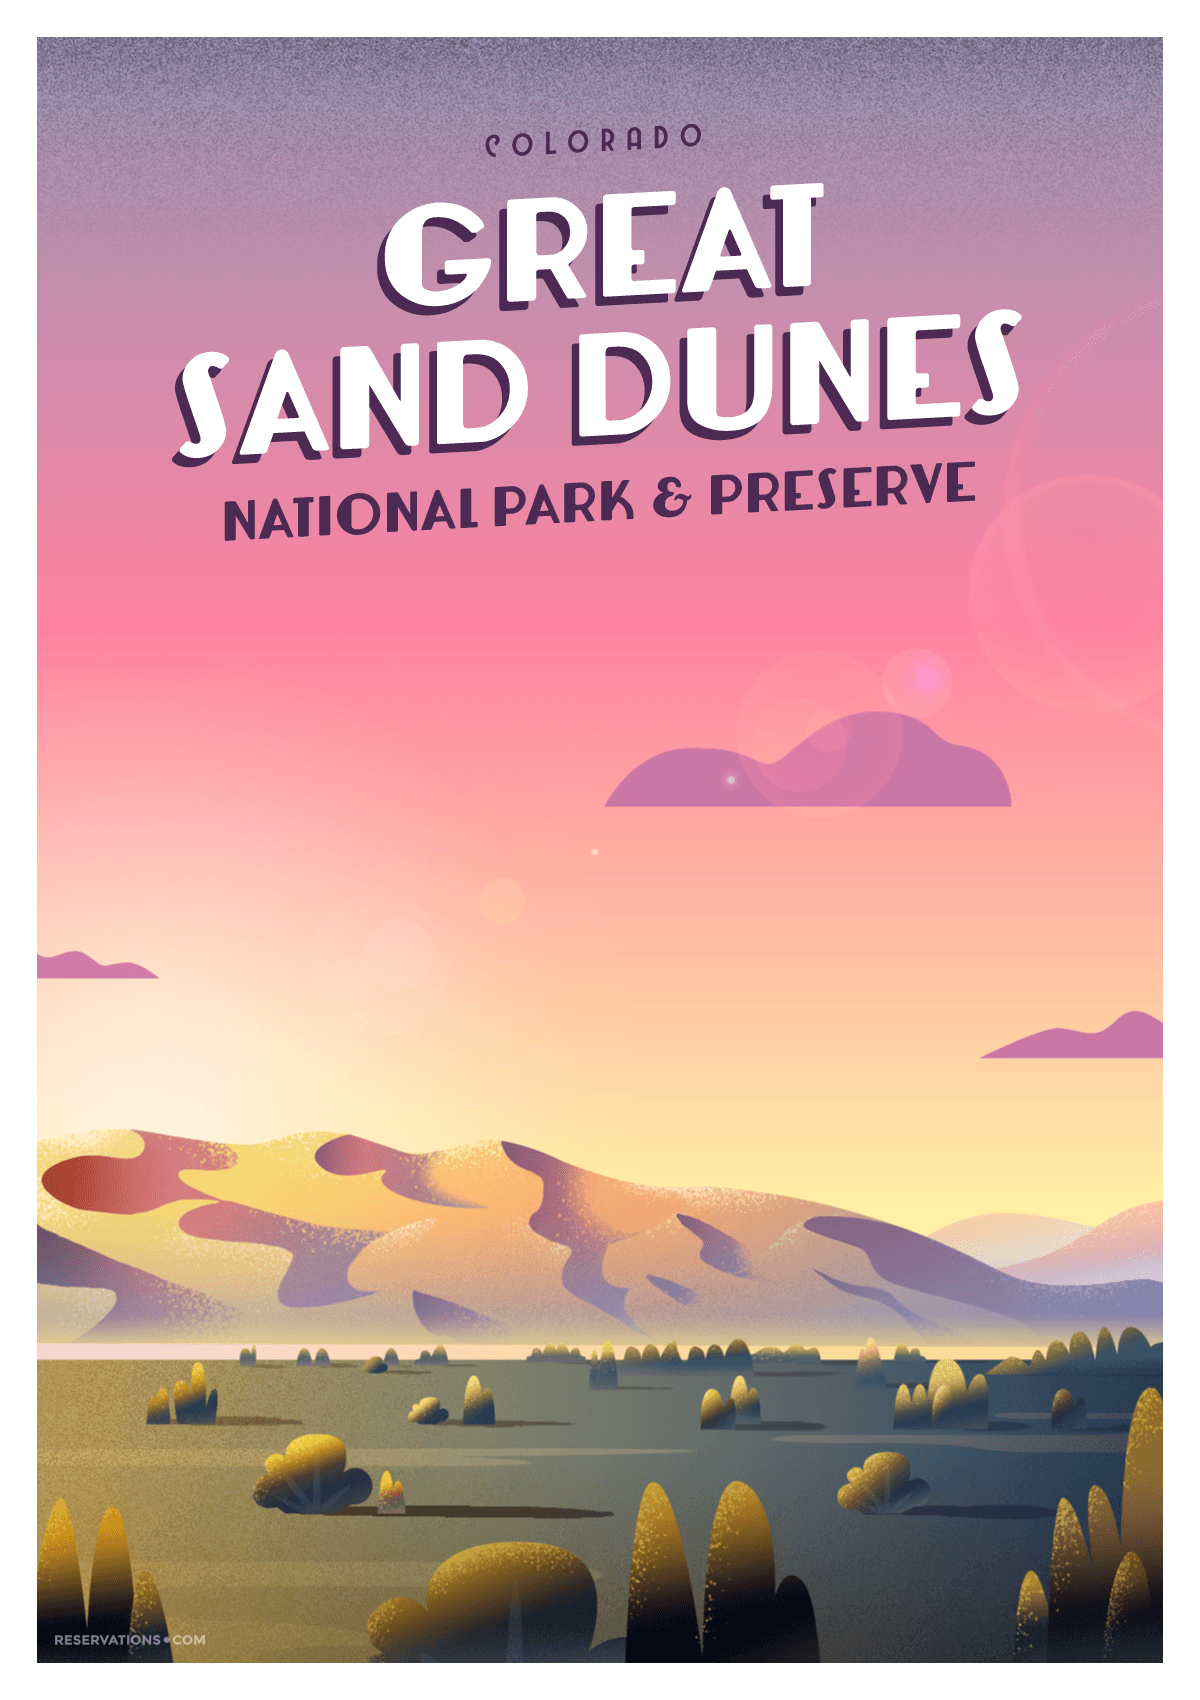 Great Sand Dunes National Park & Preserve Colorado